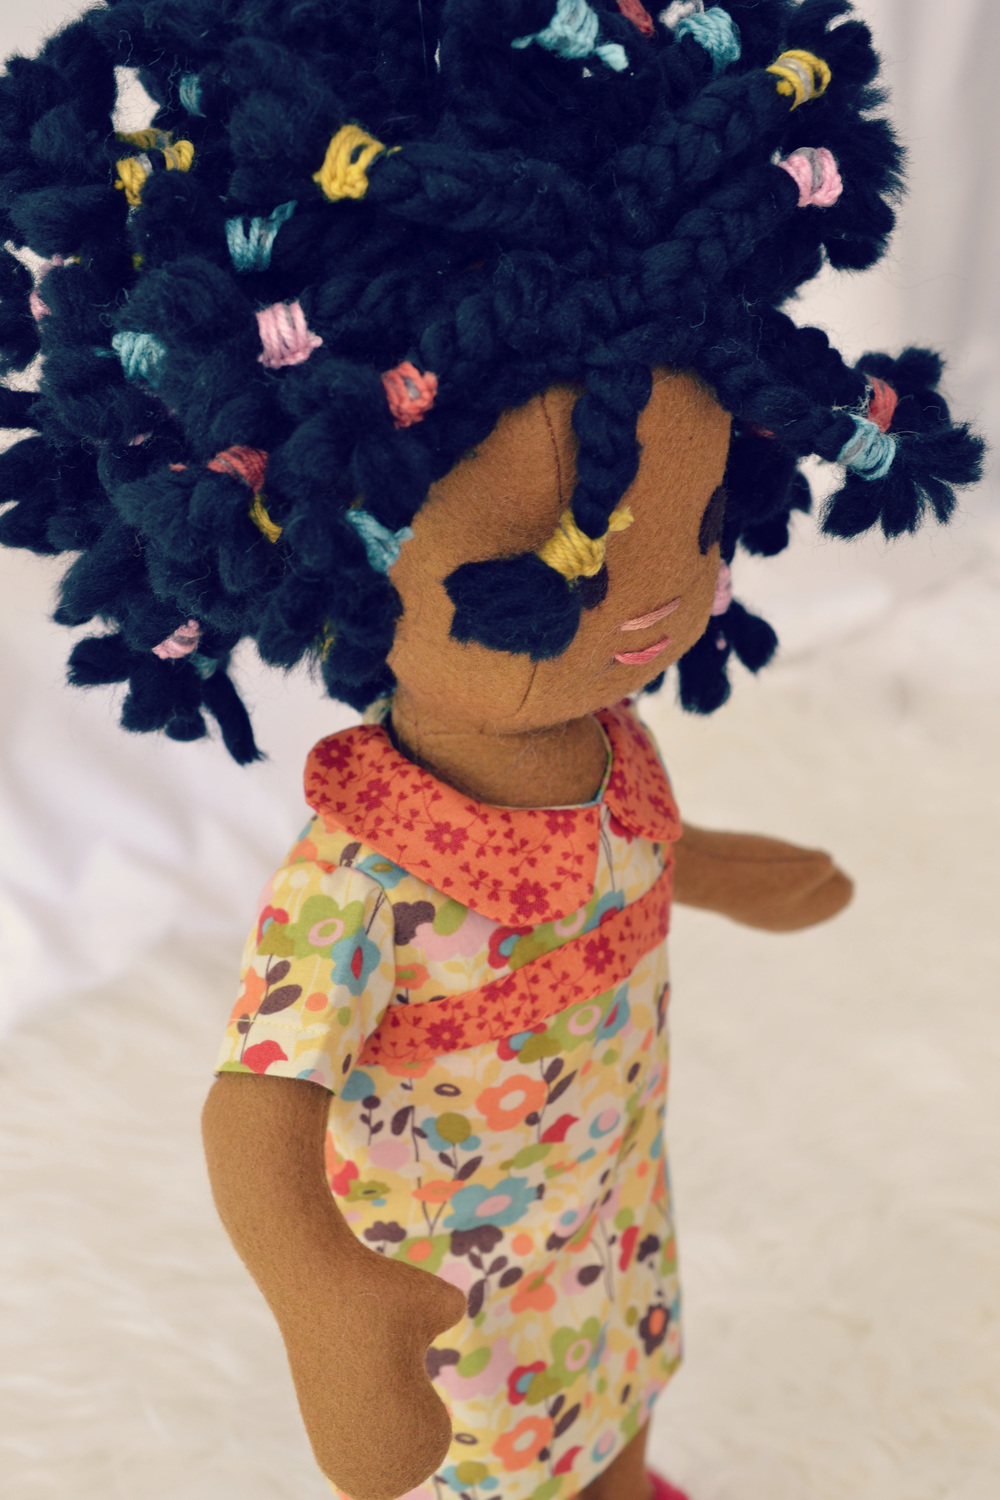 The Handmade Dolls-616.jpg